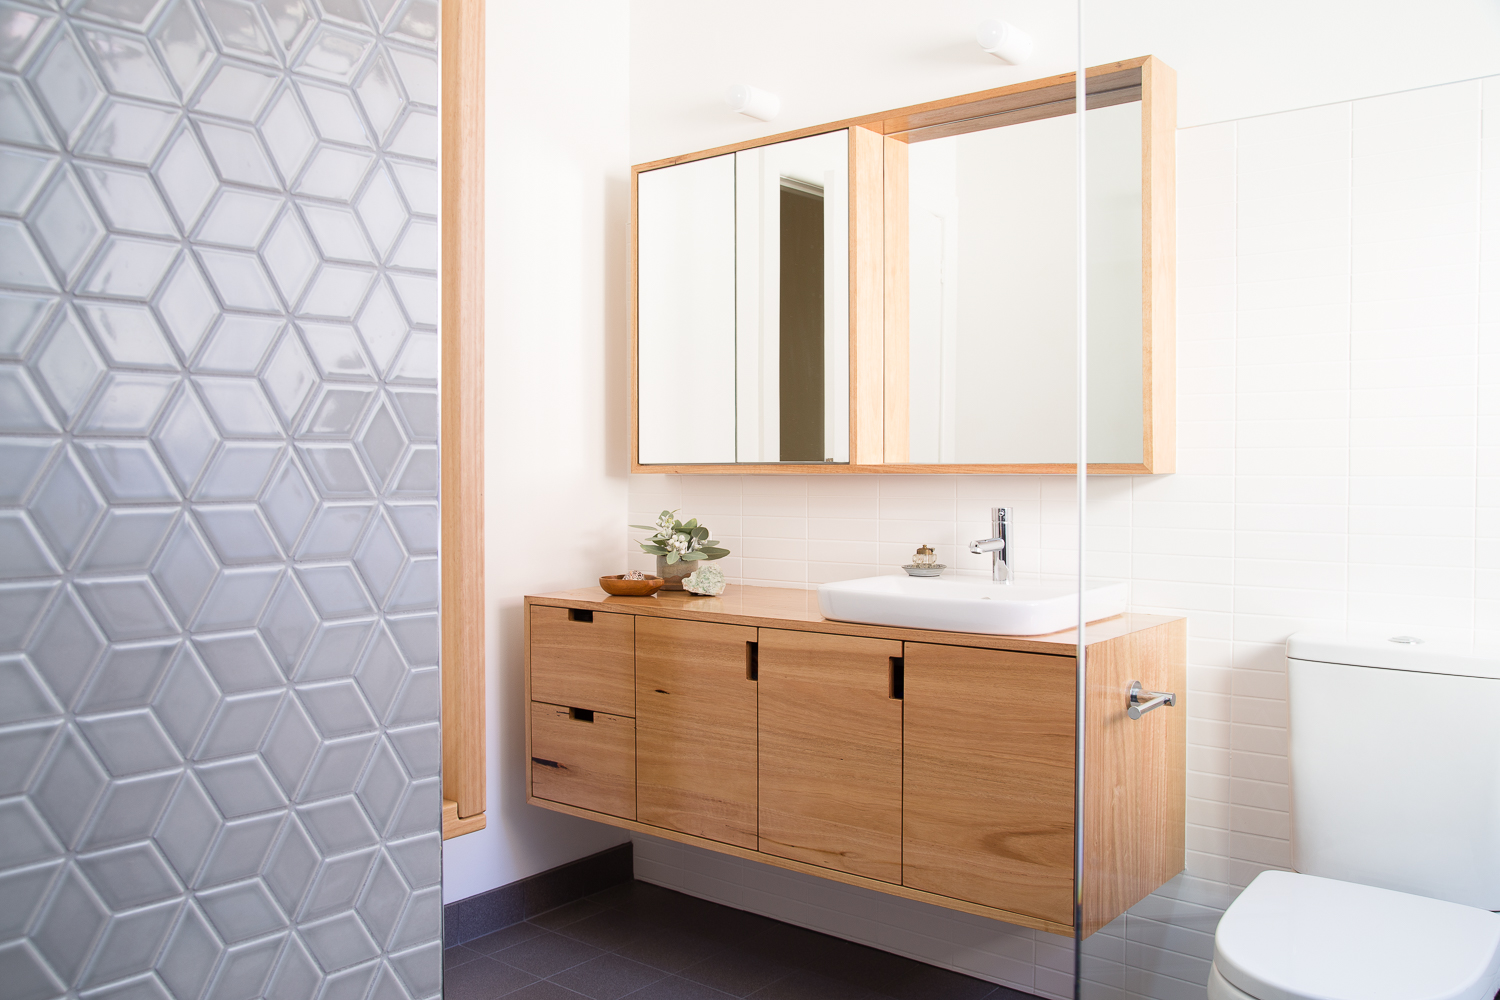 Sustainable Handmade Auld Design Bathroom Cabinet and Storage Unit | Furniture Design Melbourne and Geelong